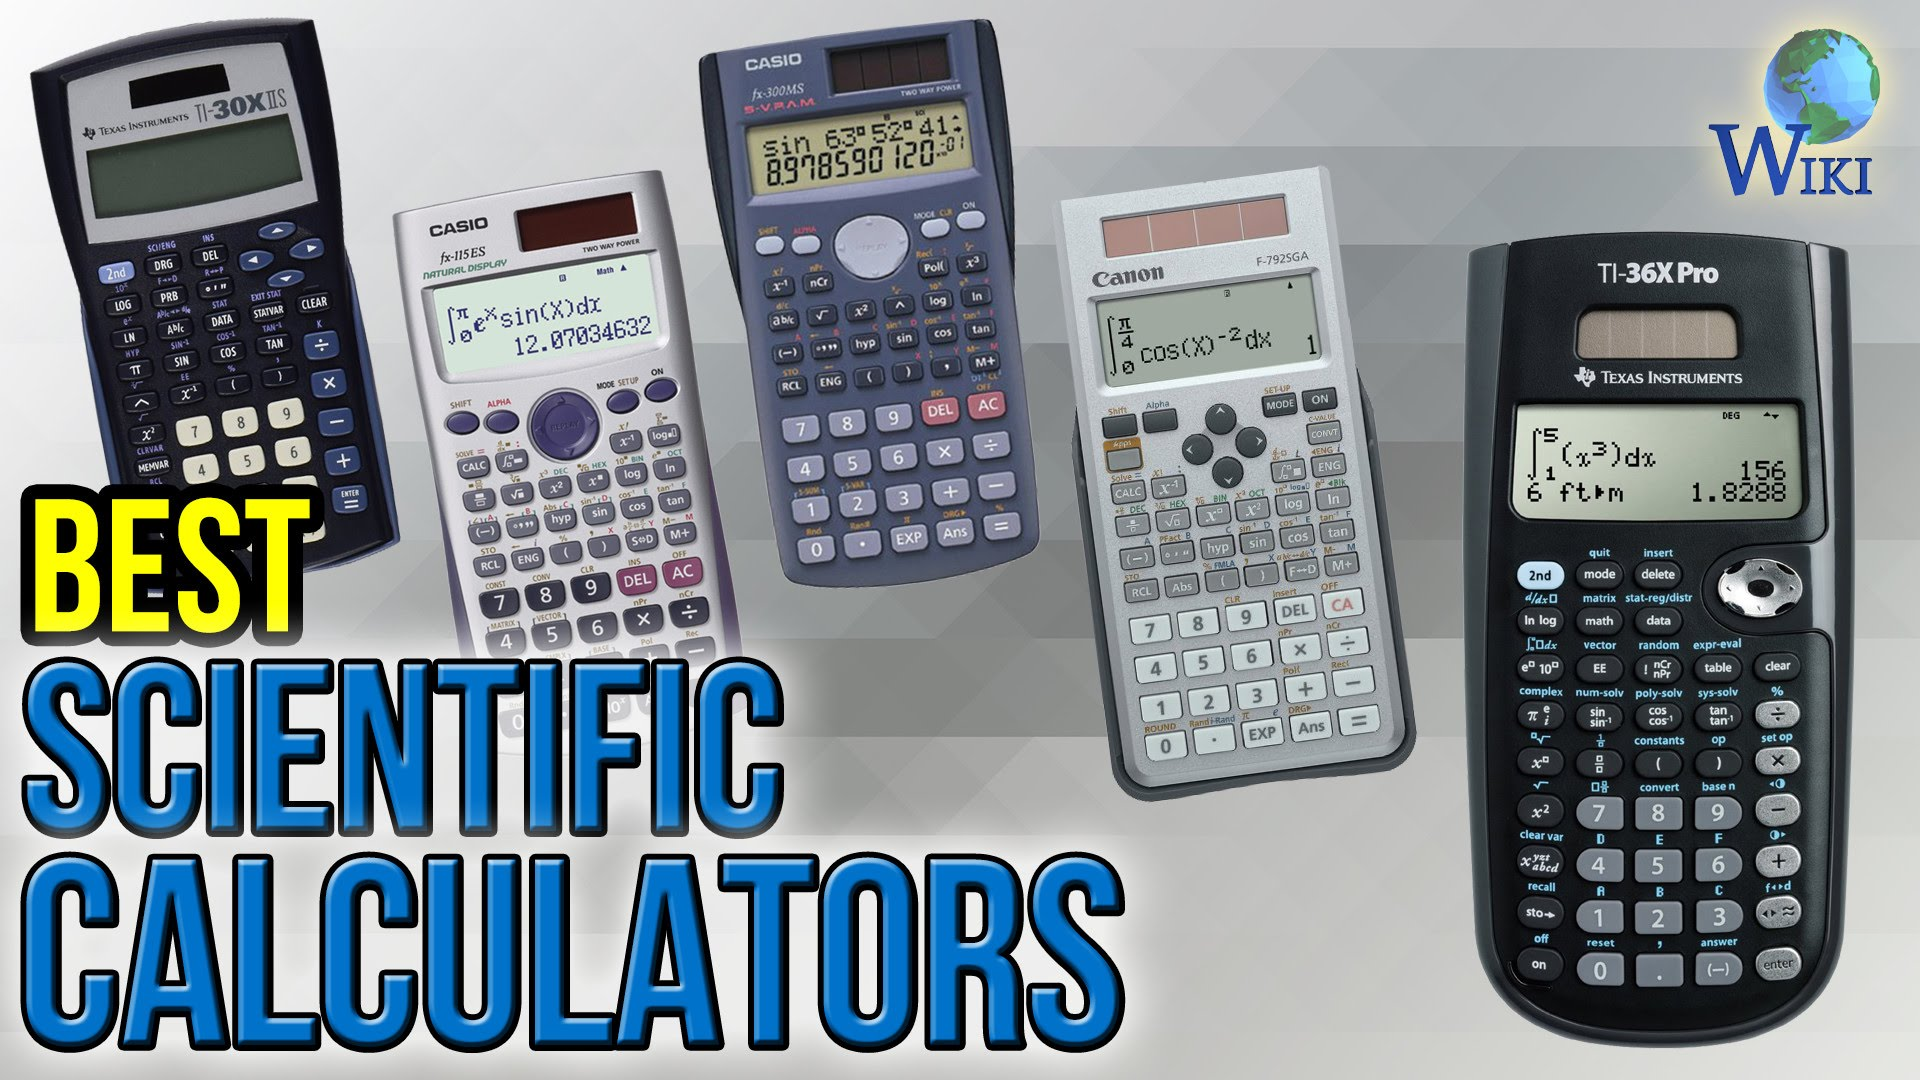 The Best 5 Scientific Calculators in India 2018 – Reviews & Ratings